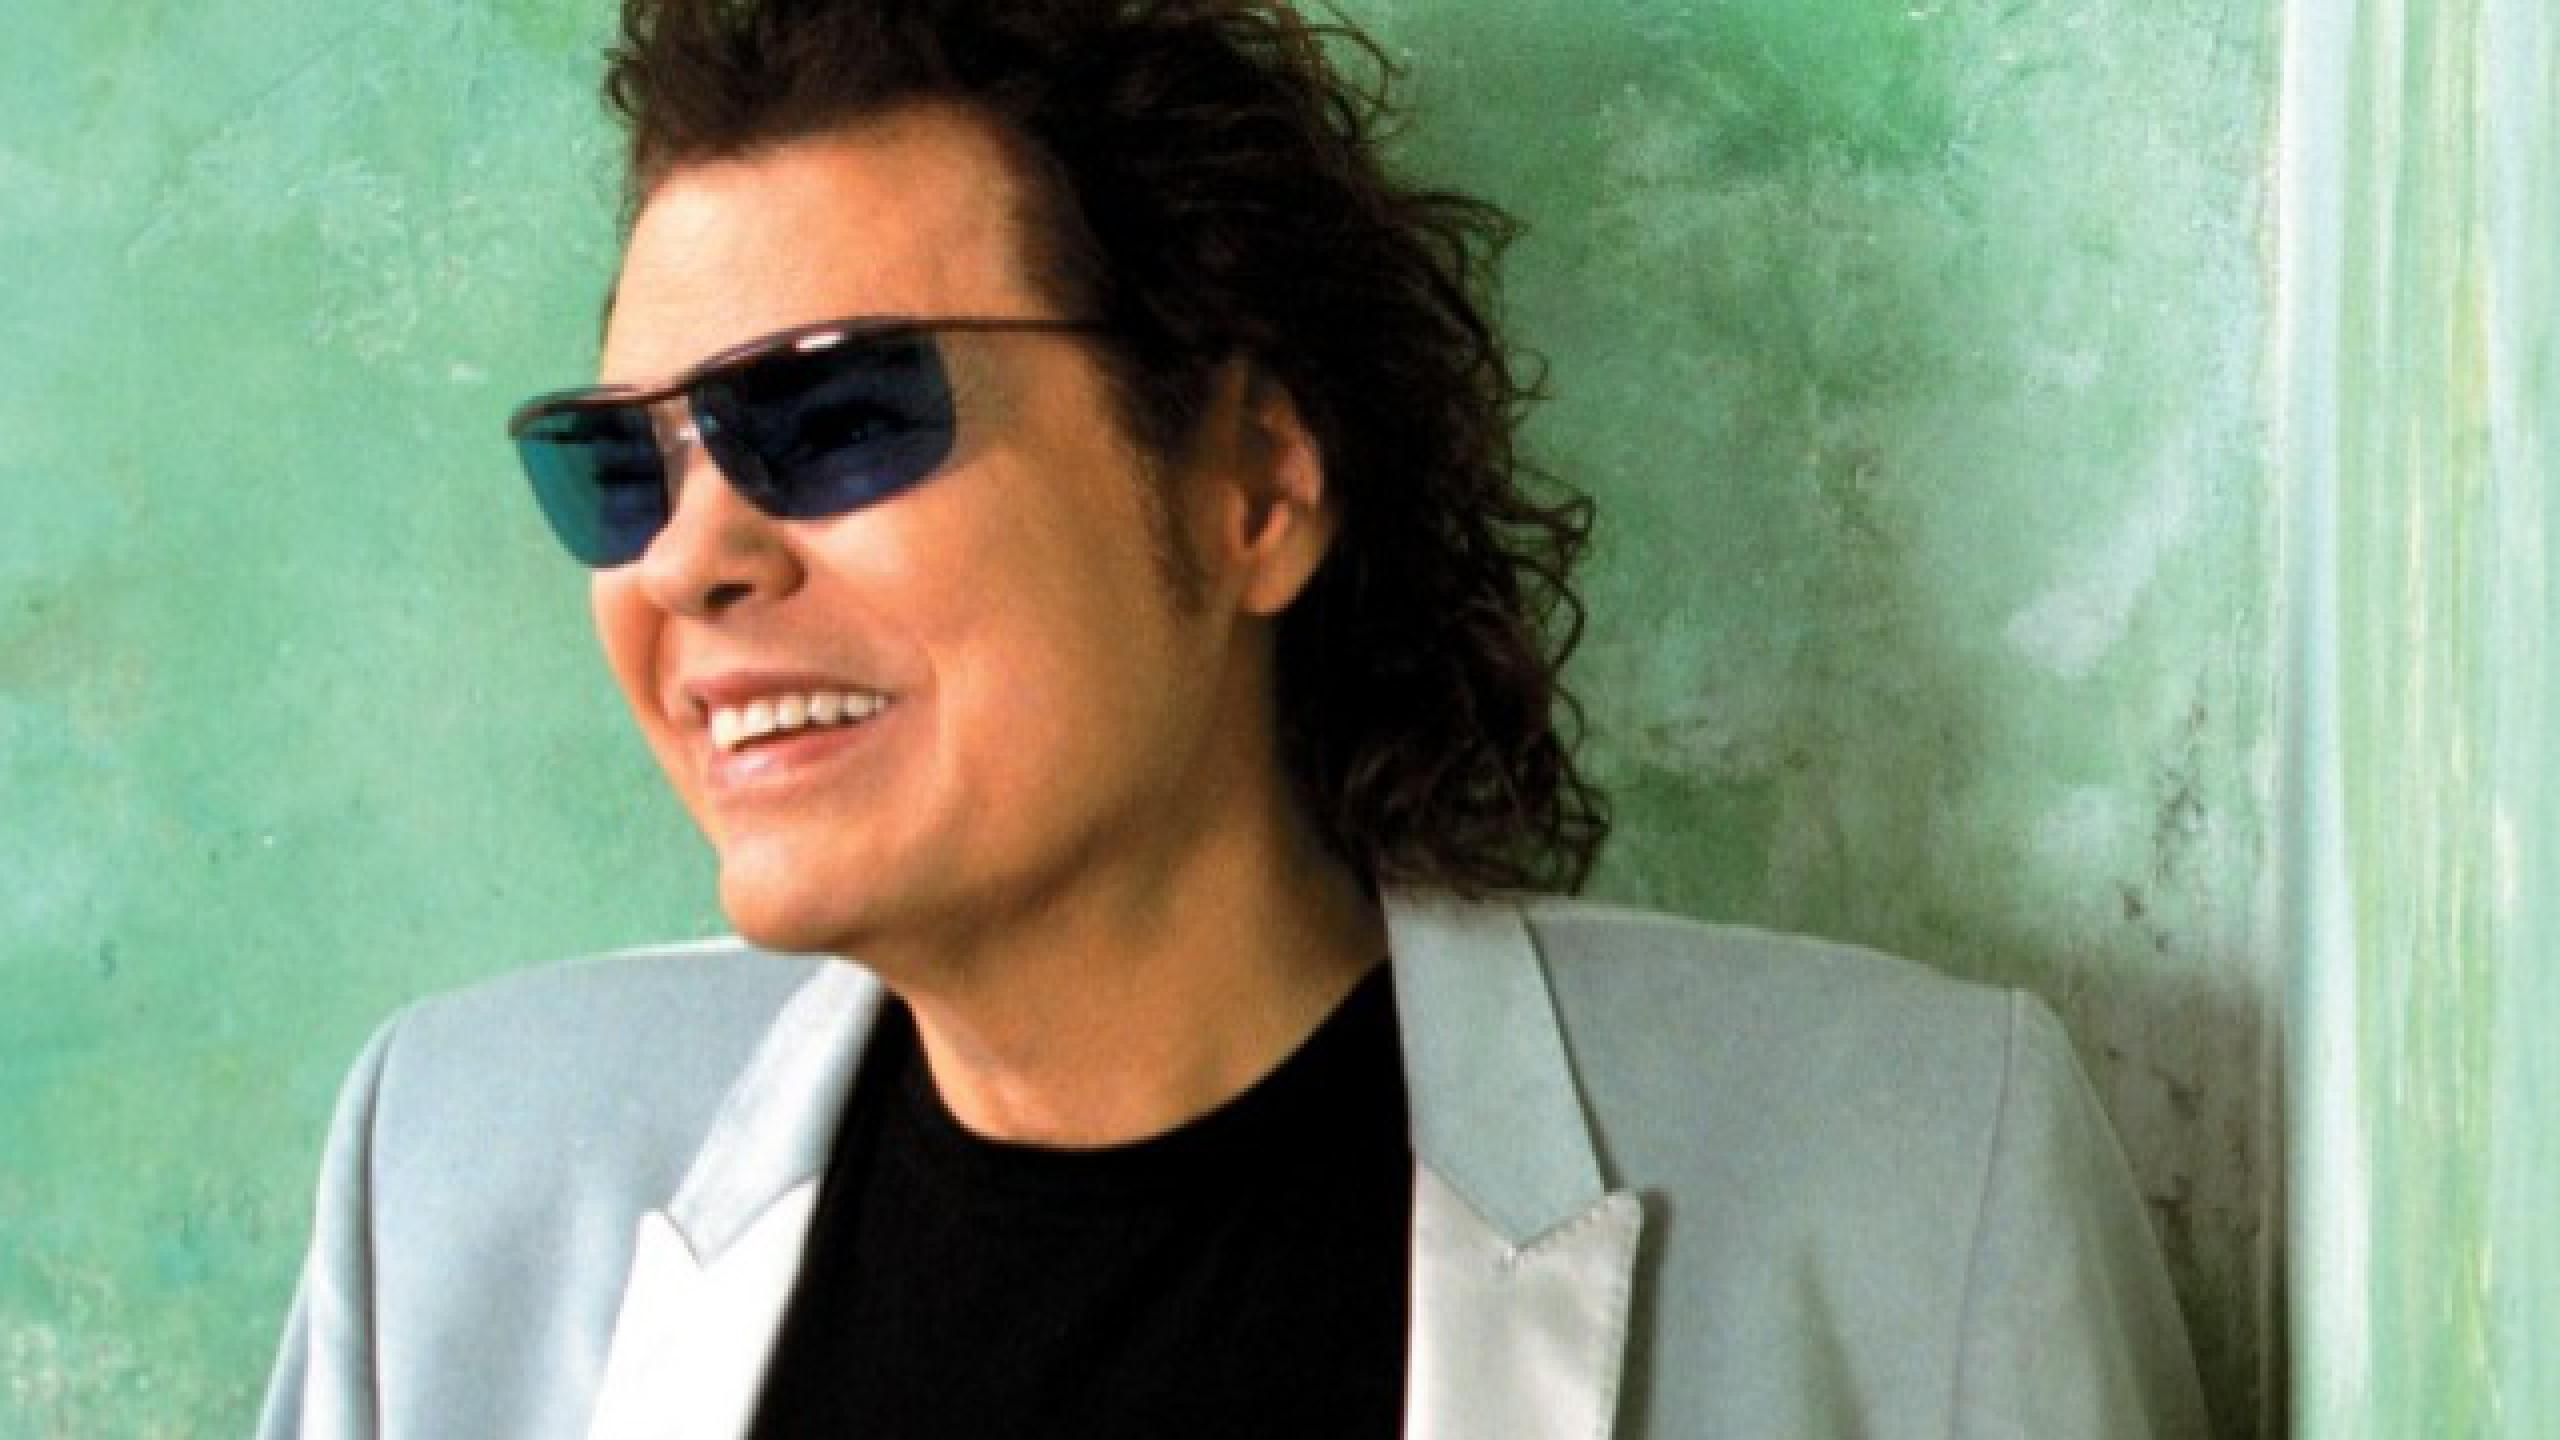 Ronnie Milsap Tour Dates 2020 Ronnie Milsap tour dates 2019 2020. Ronnie Milsap tickets and